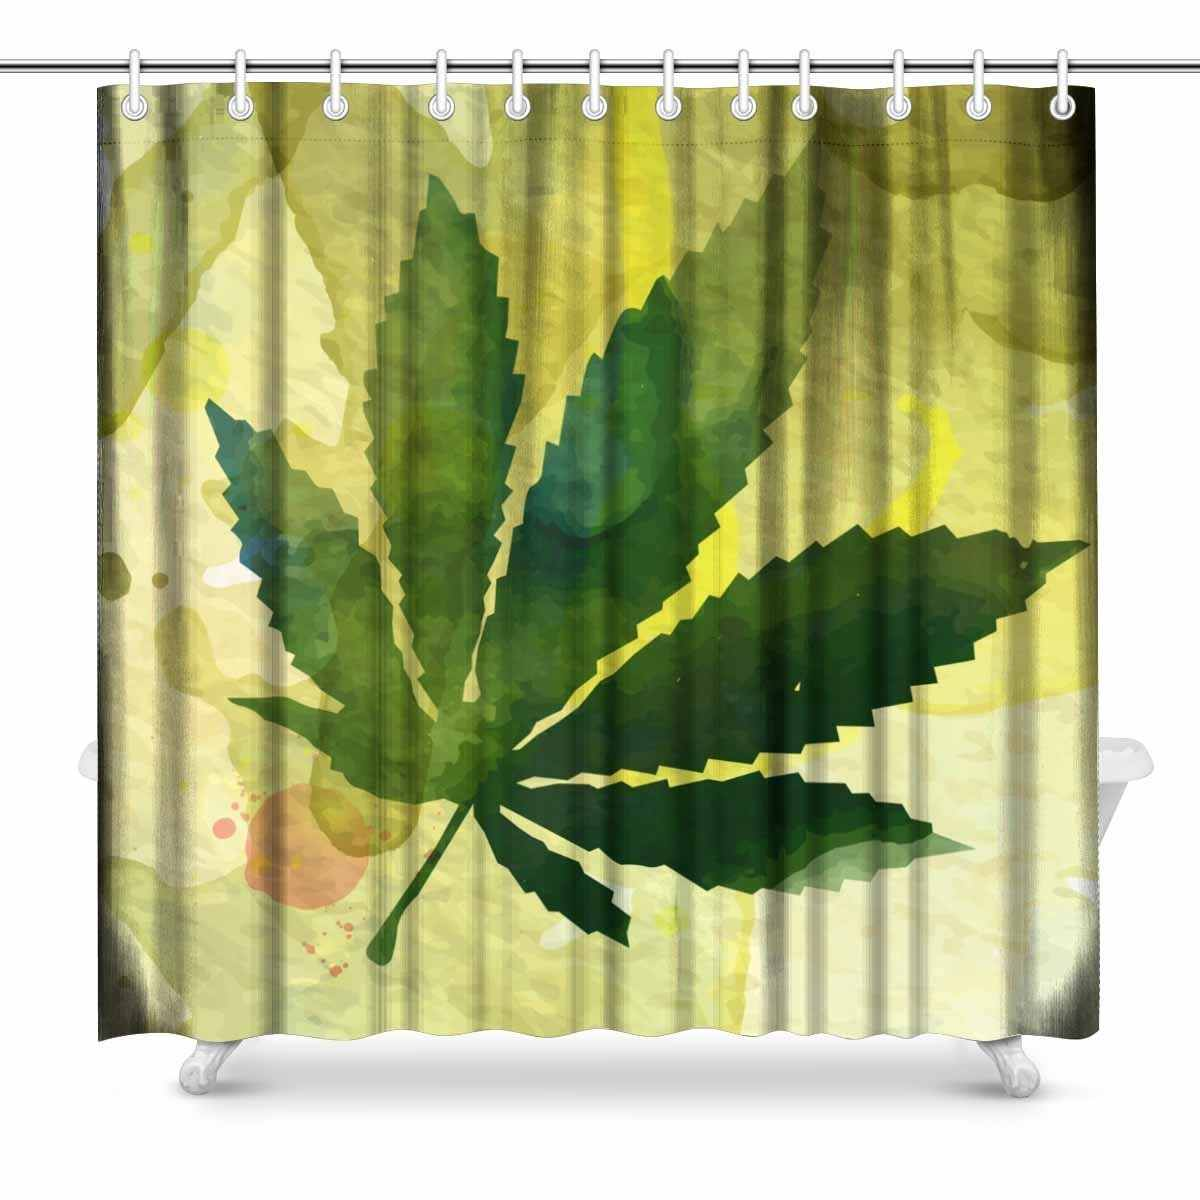 Aplysia Marijuana Leaf On The Old Watercolor Paper Background Print Polyester Fabric Shower Curtain 72 X 72 Inches